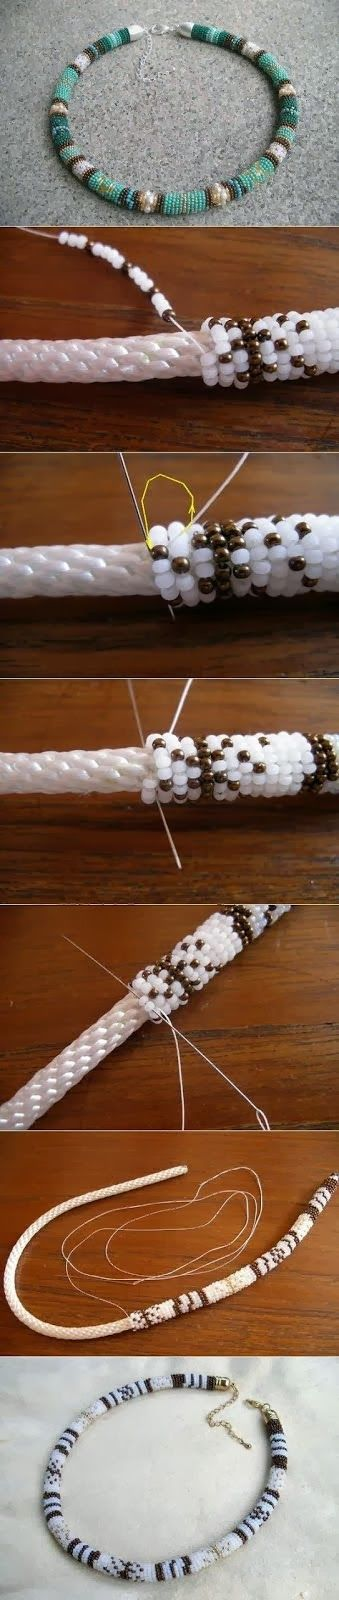 DIY : Make a Beaded Rope Necklace